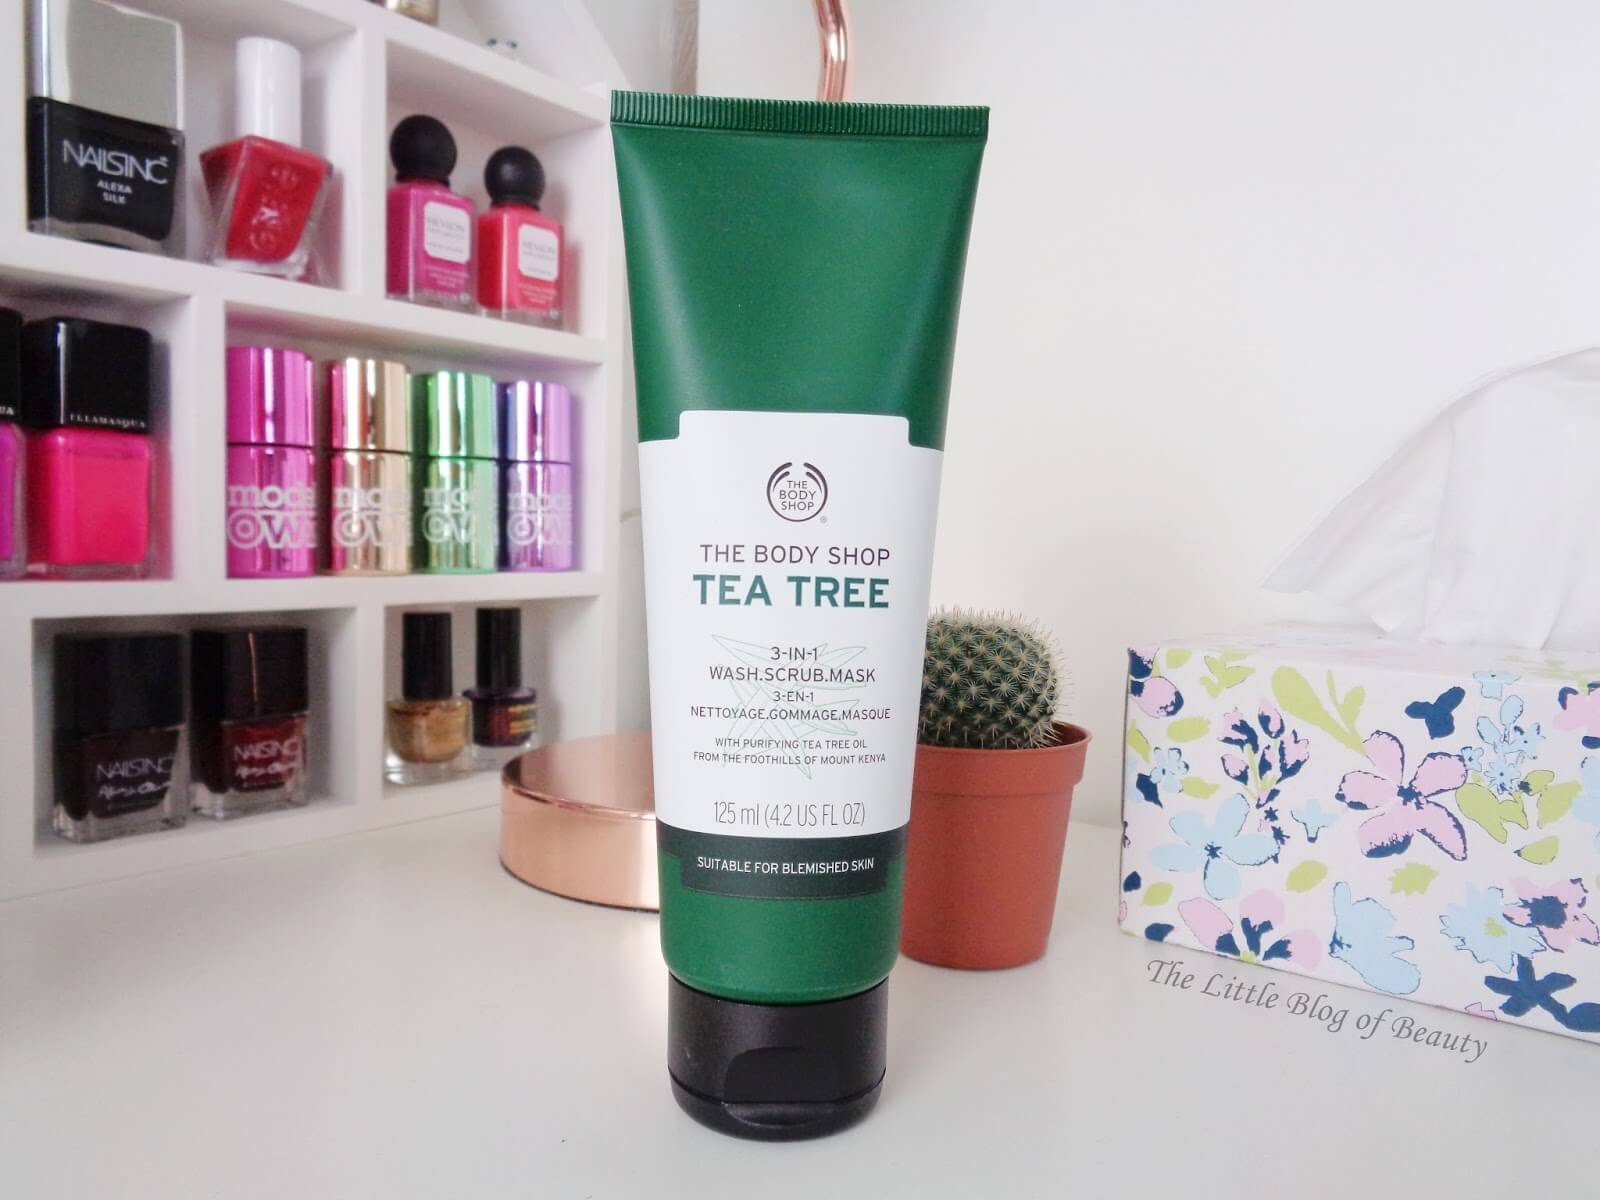 mat-na-kem-thebodyshop-tea-tree-3-in-1-wash-scrub-mask-125ml-03